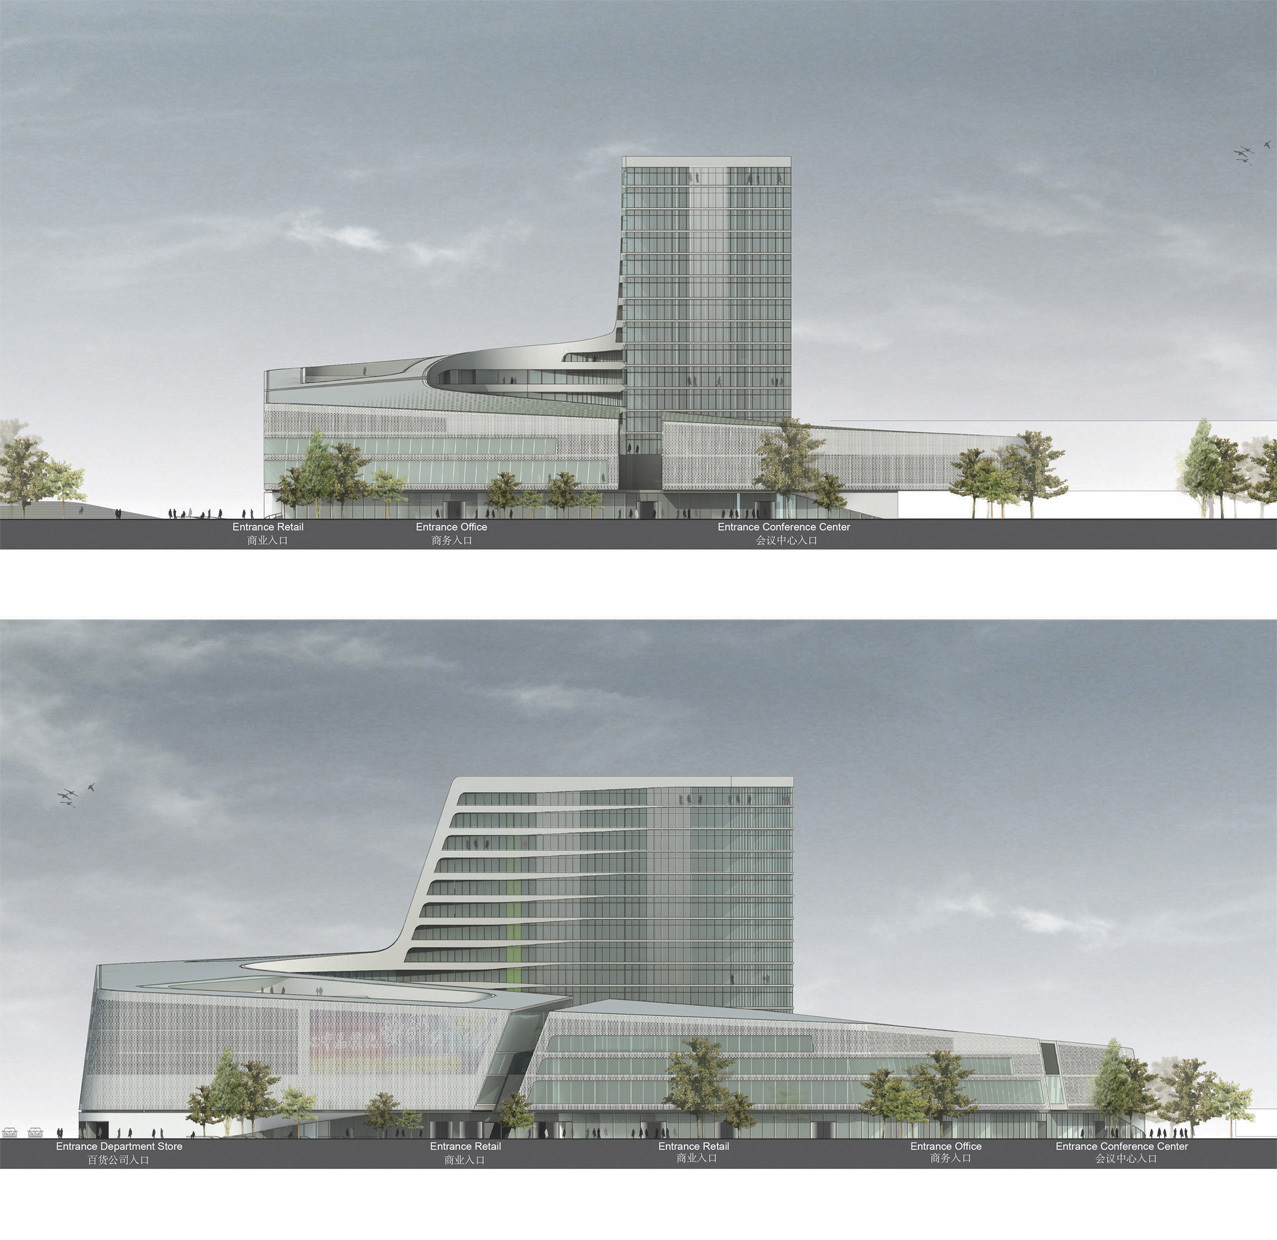 Gallery Of South West Hotel Competition Proposal Henn